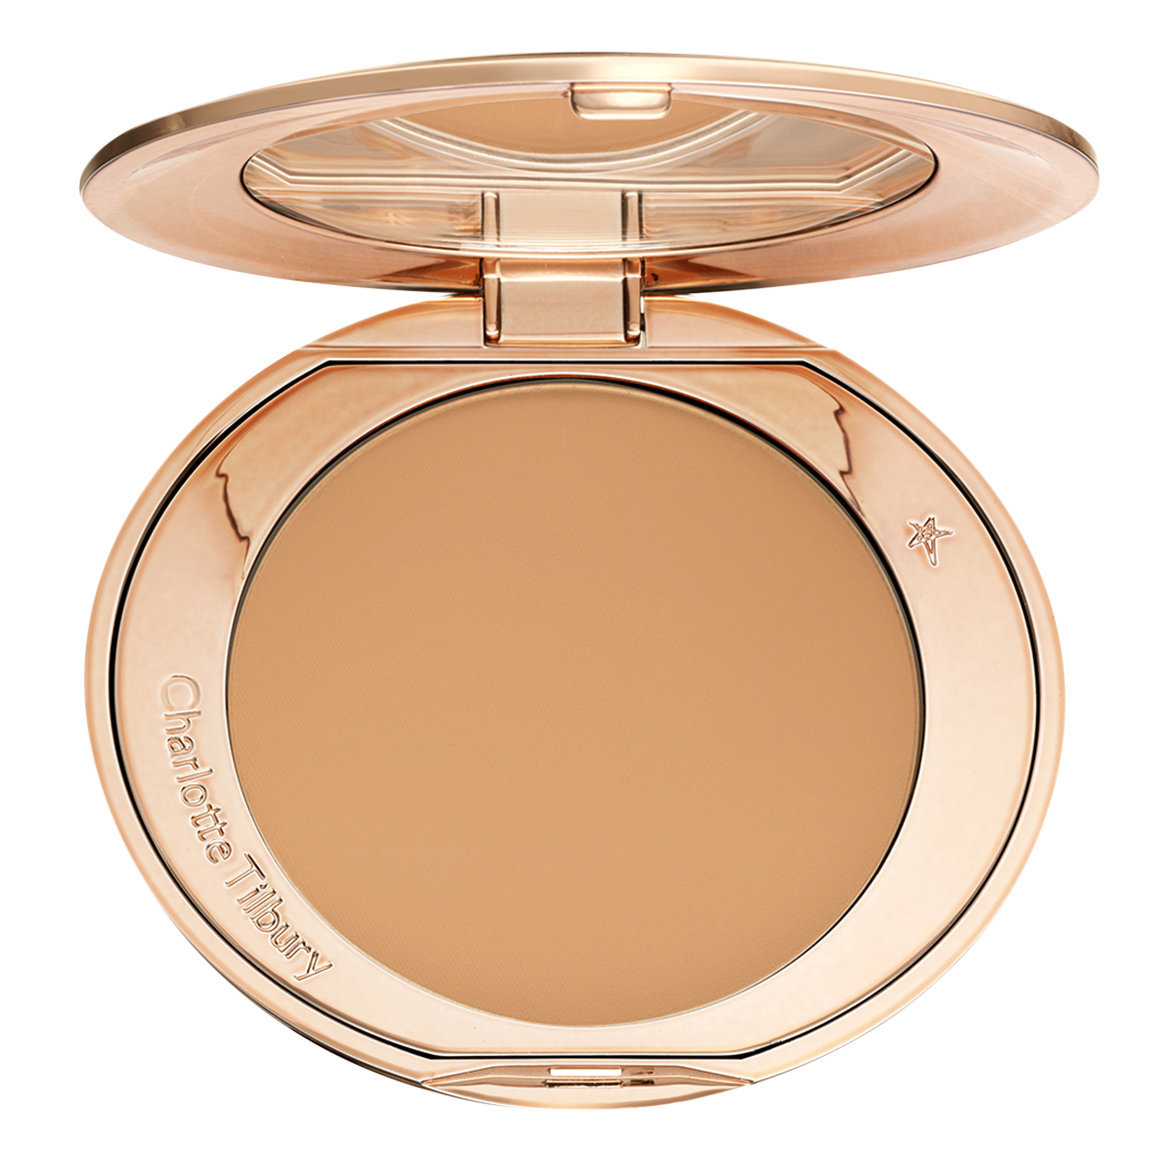 Charlotte Tilbury Airbrush Flawless Finish 3 Tan alternative view 1 - product swatch.